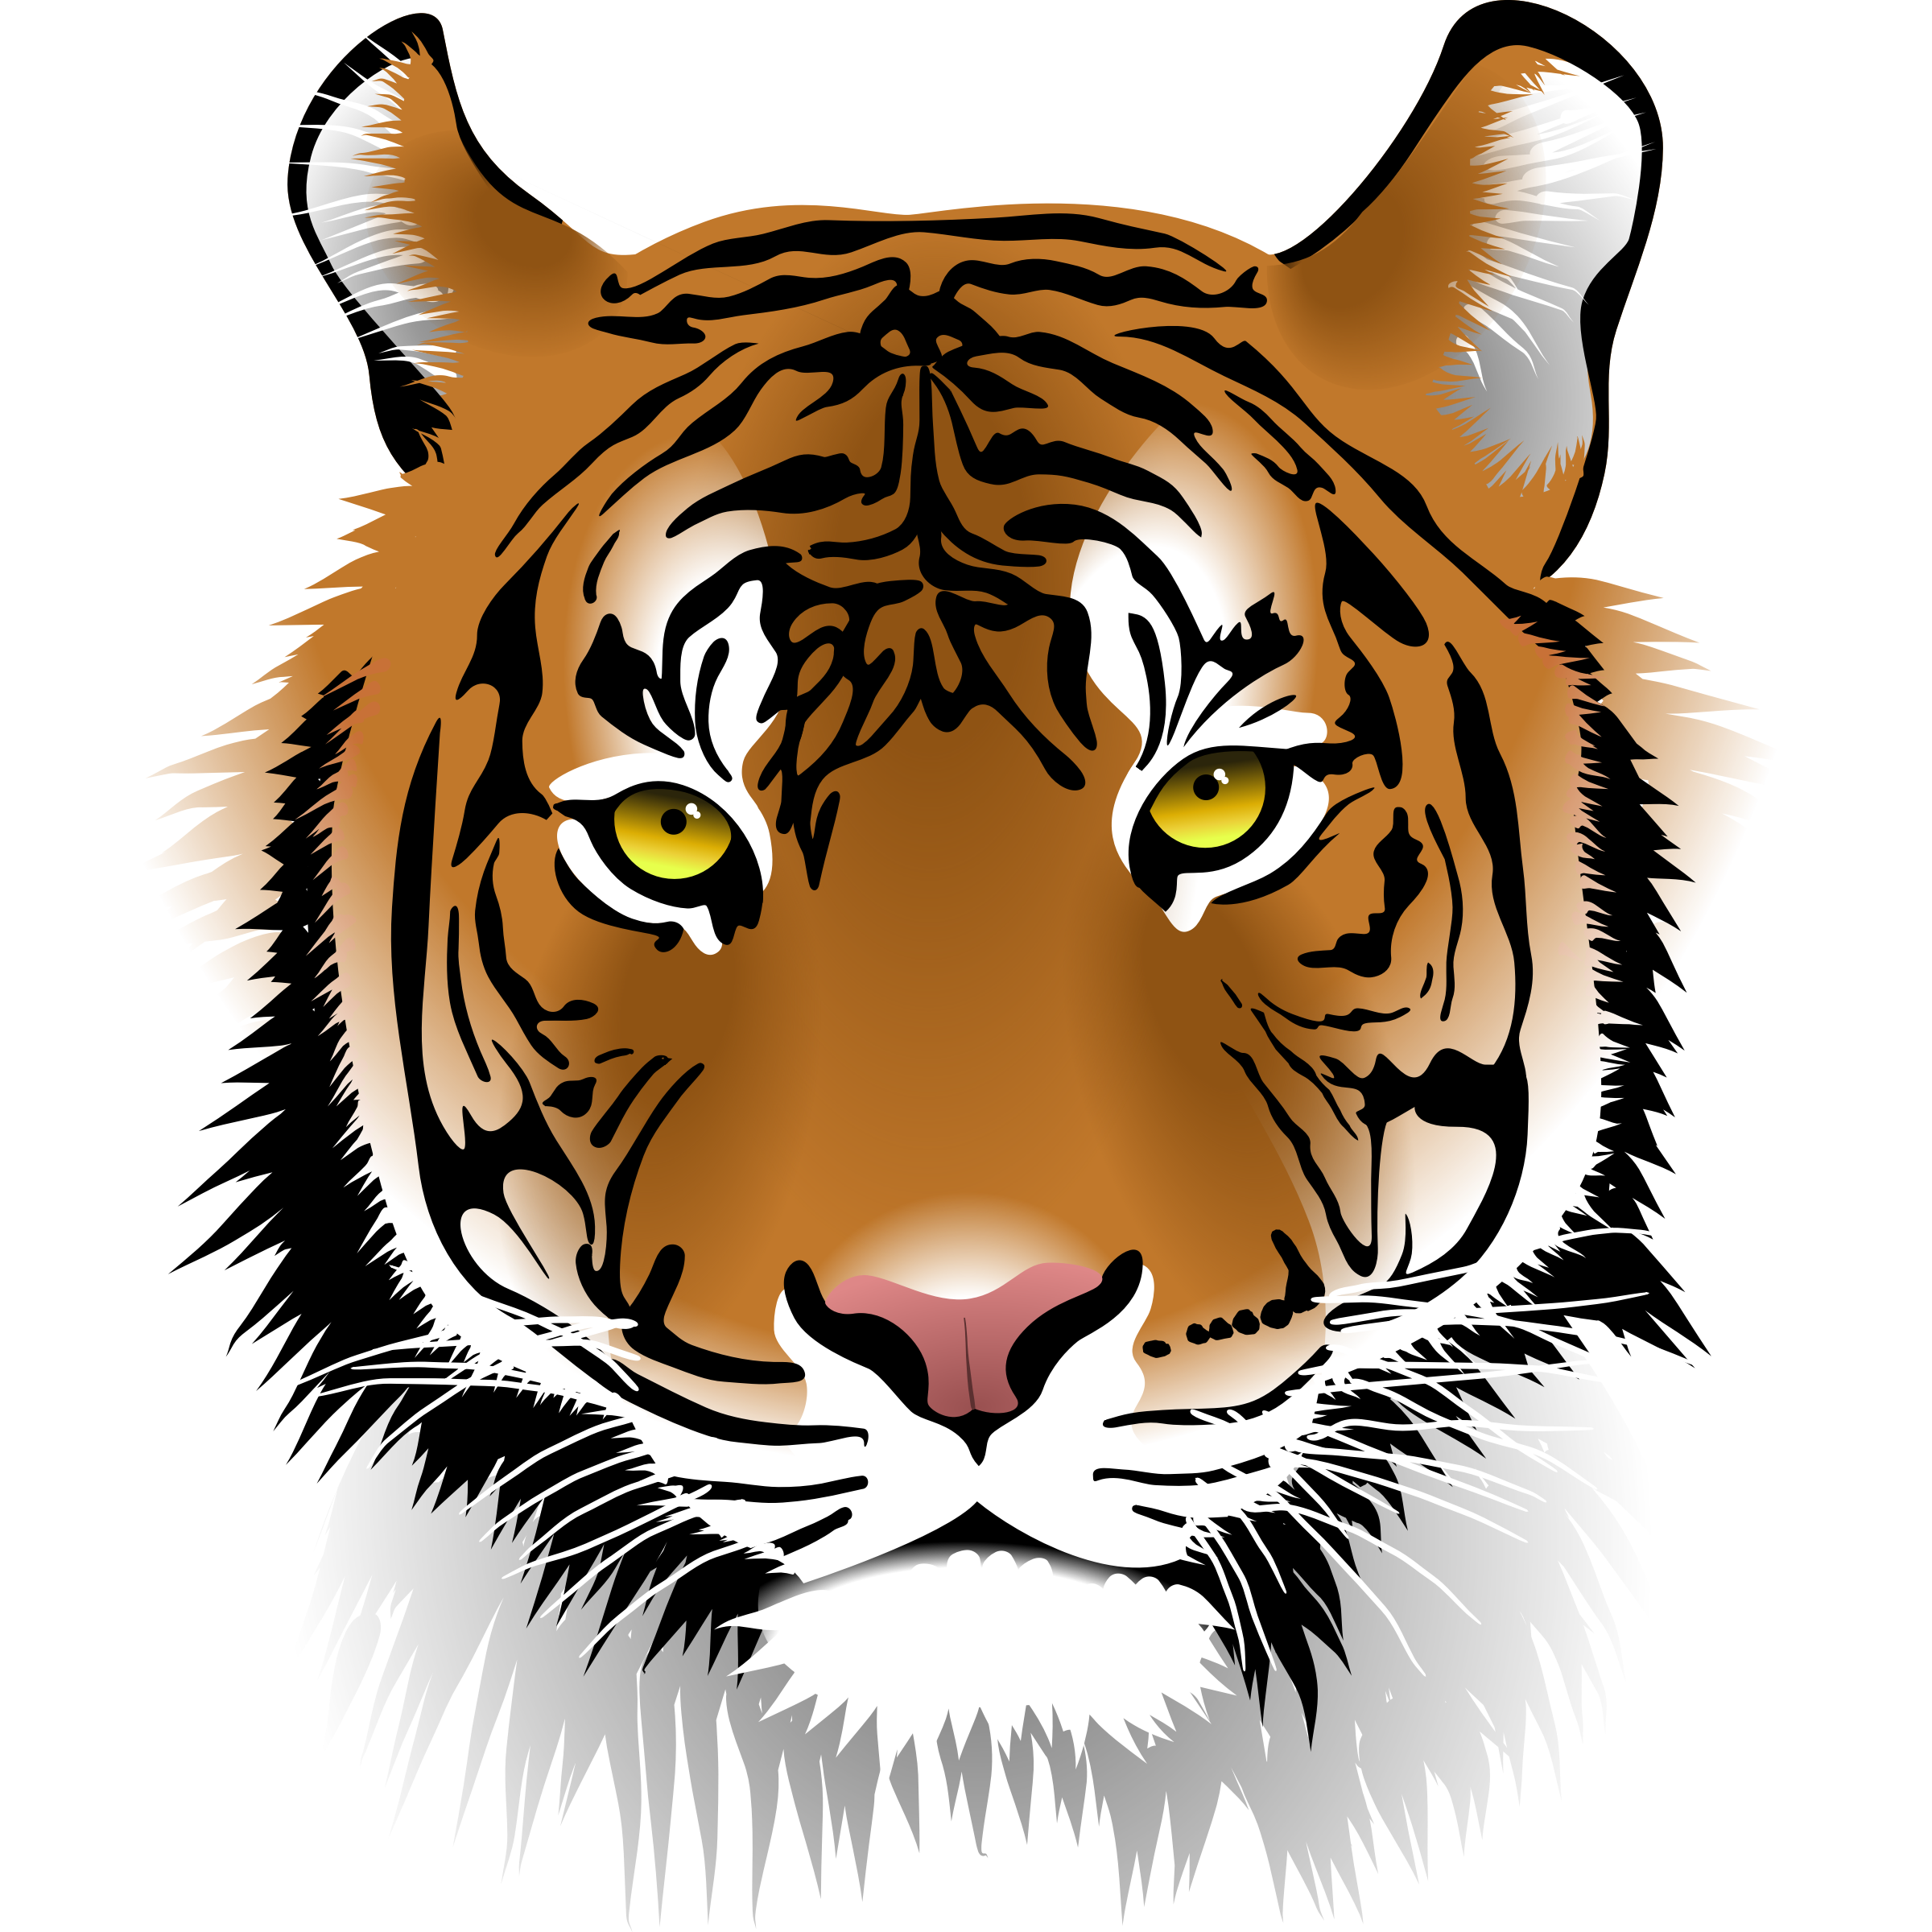 Tiger halloween clipart free library 28+ Collection of Halloween Tiger Clipart | High quality, free ... free library